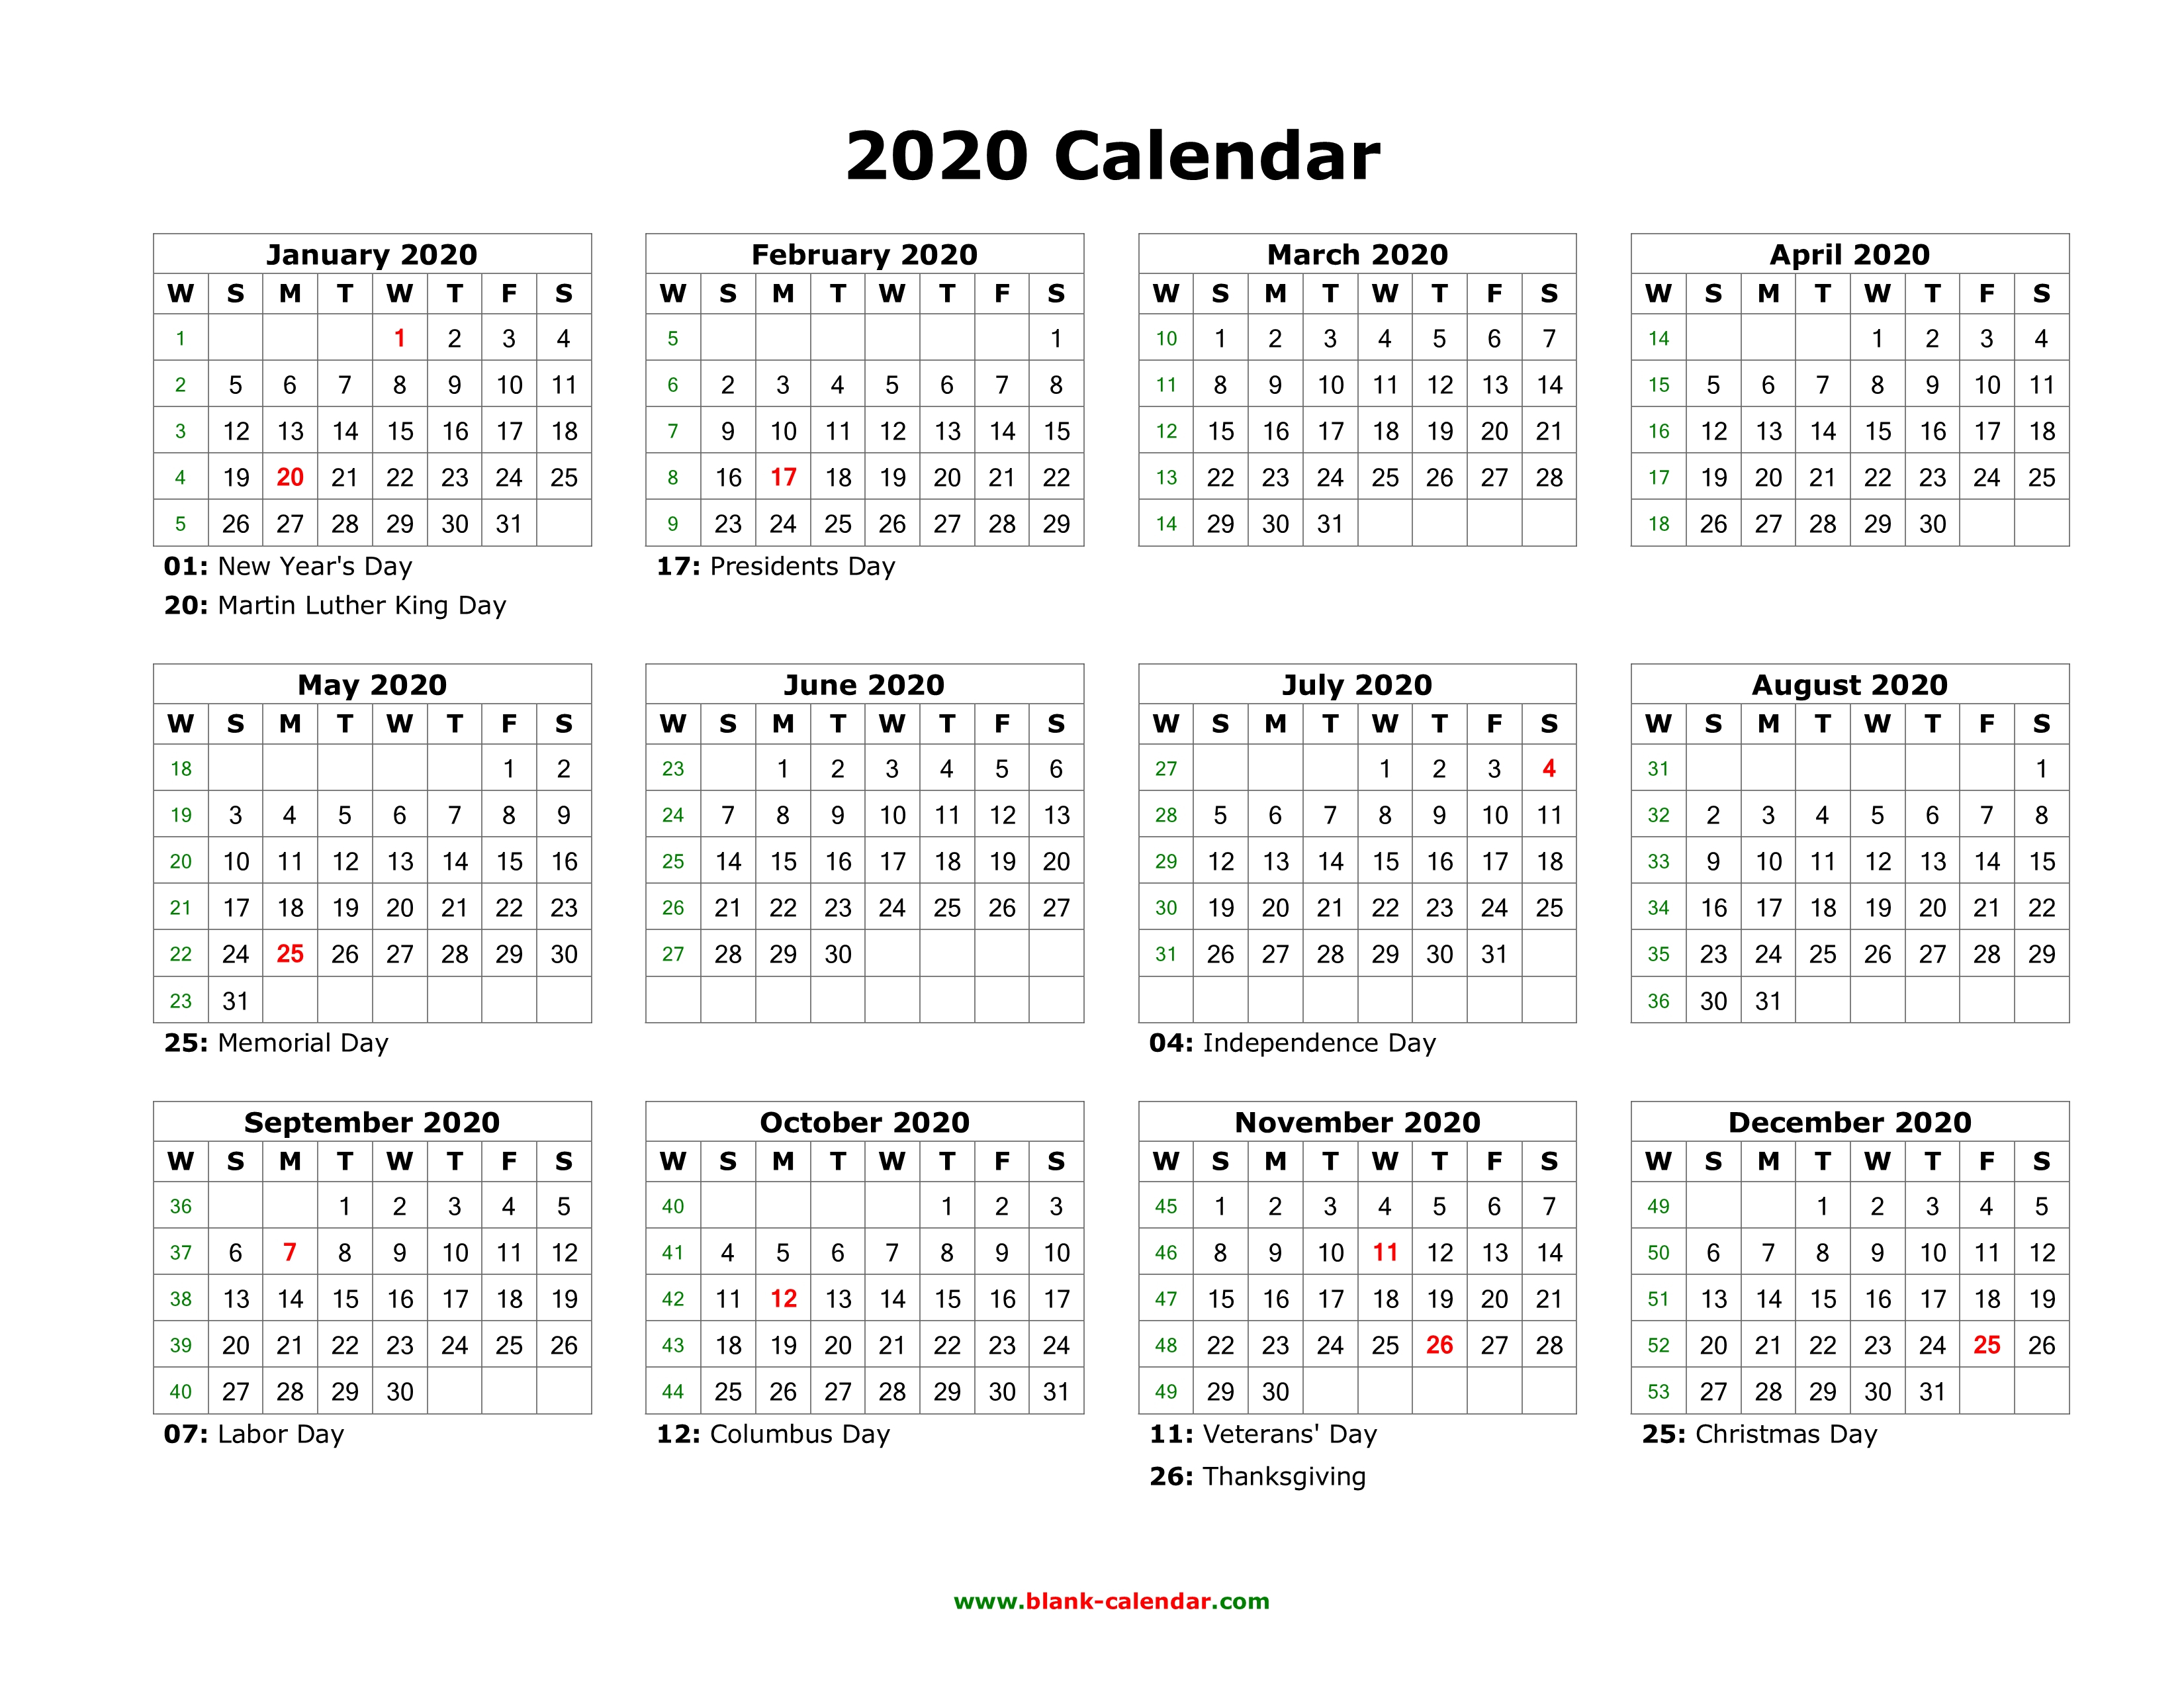 Calendar 2020 Printable With Holidays - Wpa.wpart.co